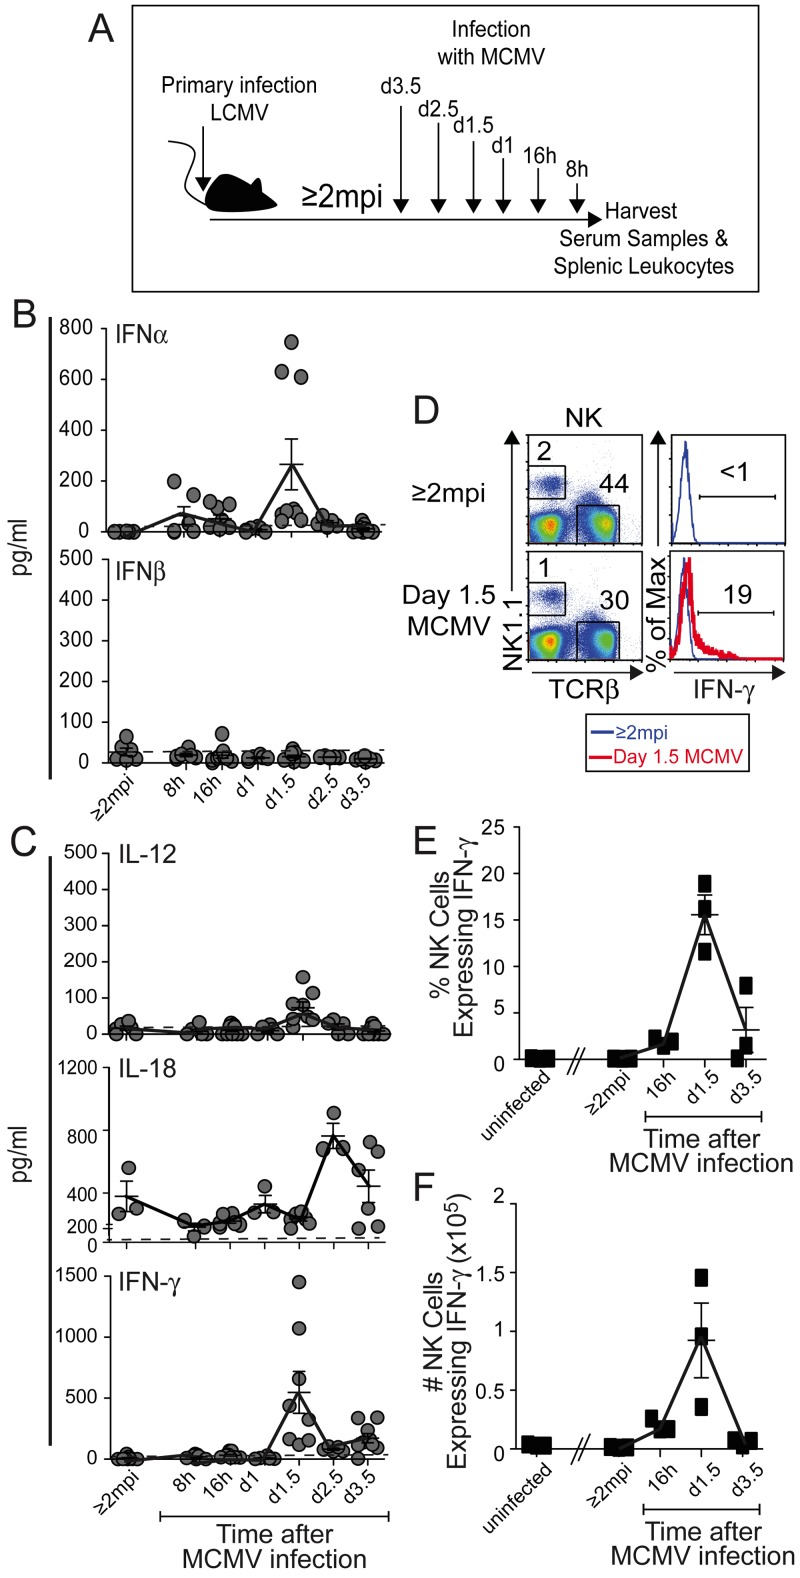 Innate cytokine responses in serum and NK cells during primary MCMV infections of LCMV-immune mice. Serum and splenic leukocyte samples were collected from LCMV-immune (≥2 mpi) mice and from LCMV-immune mice after a primary i.p. infection with 10 to 15,000 PFU MCMV at 8 h, 16 h, 1 day, 1.5 days, and 3.5 days before harvest as indicated (A). Circulating levels of IFN-α and IFN-β (B) and IL-18 (C) were measured by ELISA, and those of IL-12 and IFN-γ (C) were measured by CBA, as described in Materials and Methods. The samples were collected from three independent experiments. The means are connected by solid lines. The limit of detection by the assays is indicated by the dashed line. (D) Splenic leukocytes were analyzed for NK1.1 + TCRβ − NK cell populations expressing intracellular IFN-γ. The IFN-γ proportions and yields of NK1.1 + TCRβ − NK cells were determined after 4 h of ex vivo incubation in brefeldin without further stimulation. Representative staining of single samples is shown as plots (D) with histograms of IFN-γ staining within NK cells from uninfected LCMV-immune (≥2 mpi) (blue line) or day 1.5 MCMV-challenged (red line) LCMV-immune mice presented. The percentages (F) and yields (G) of NK cells expressing IFN-γ are shown. Symbols represent results from individual mice with three to nine samples from multiple experiments (B, C) or three mice per group in one experiment (D to G) used for each time point shown. Means ± SEMs (error bars) are shown. Mean NK cell percentages and IFN-γ expression values are connected by solid lines.